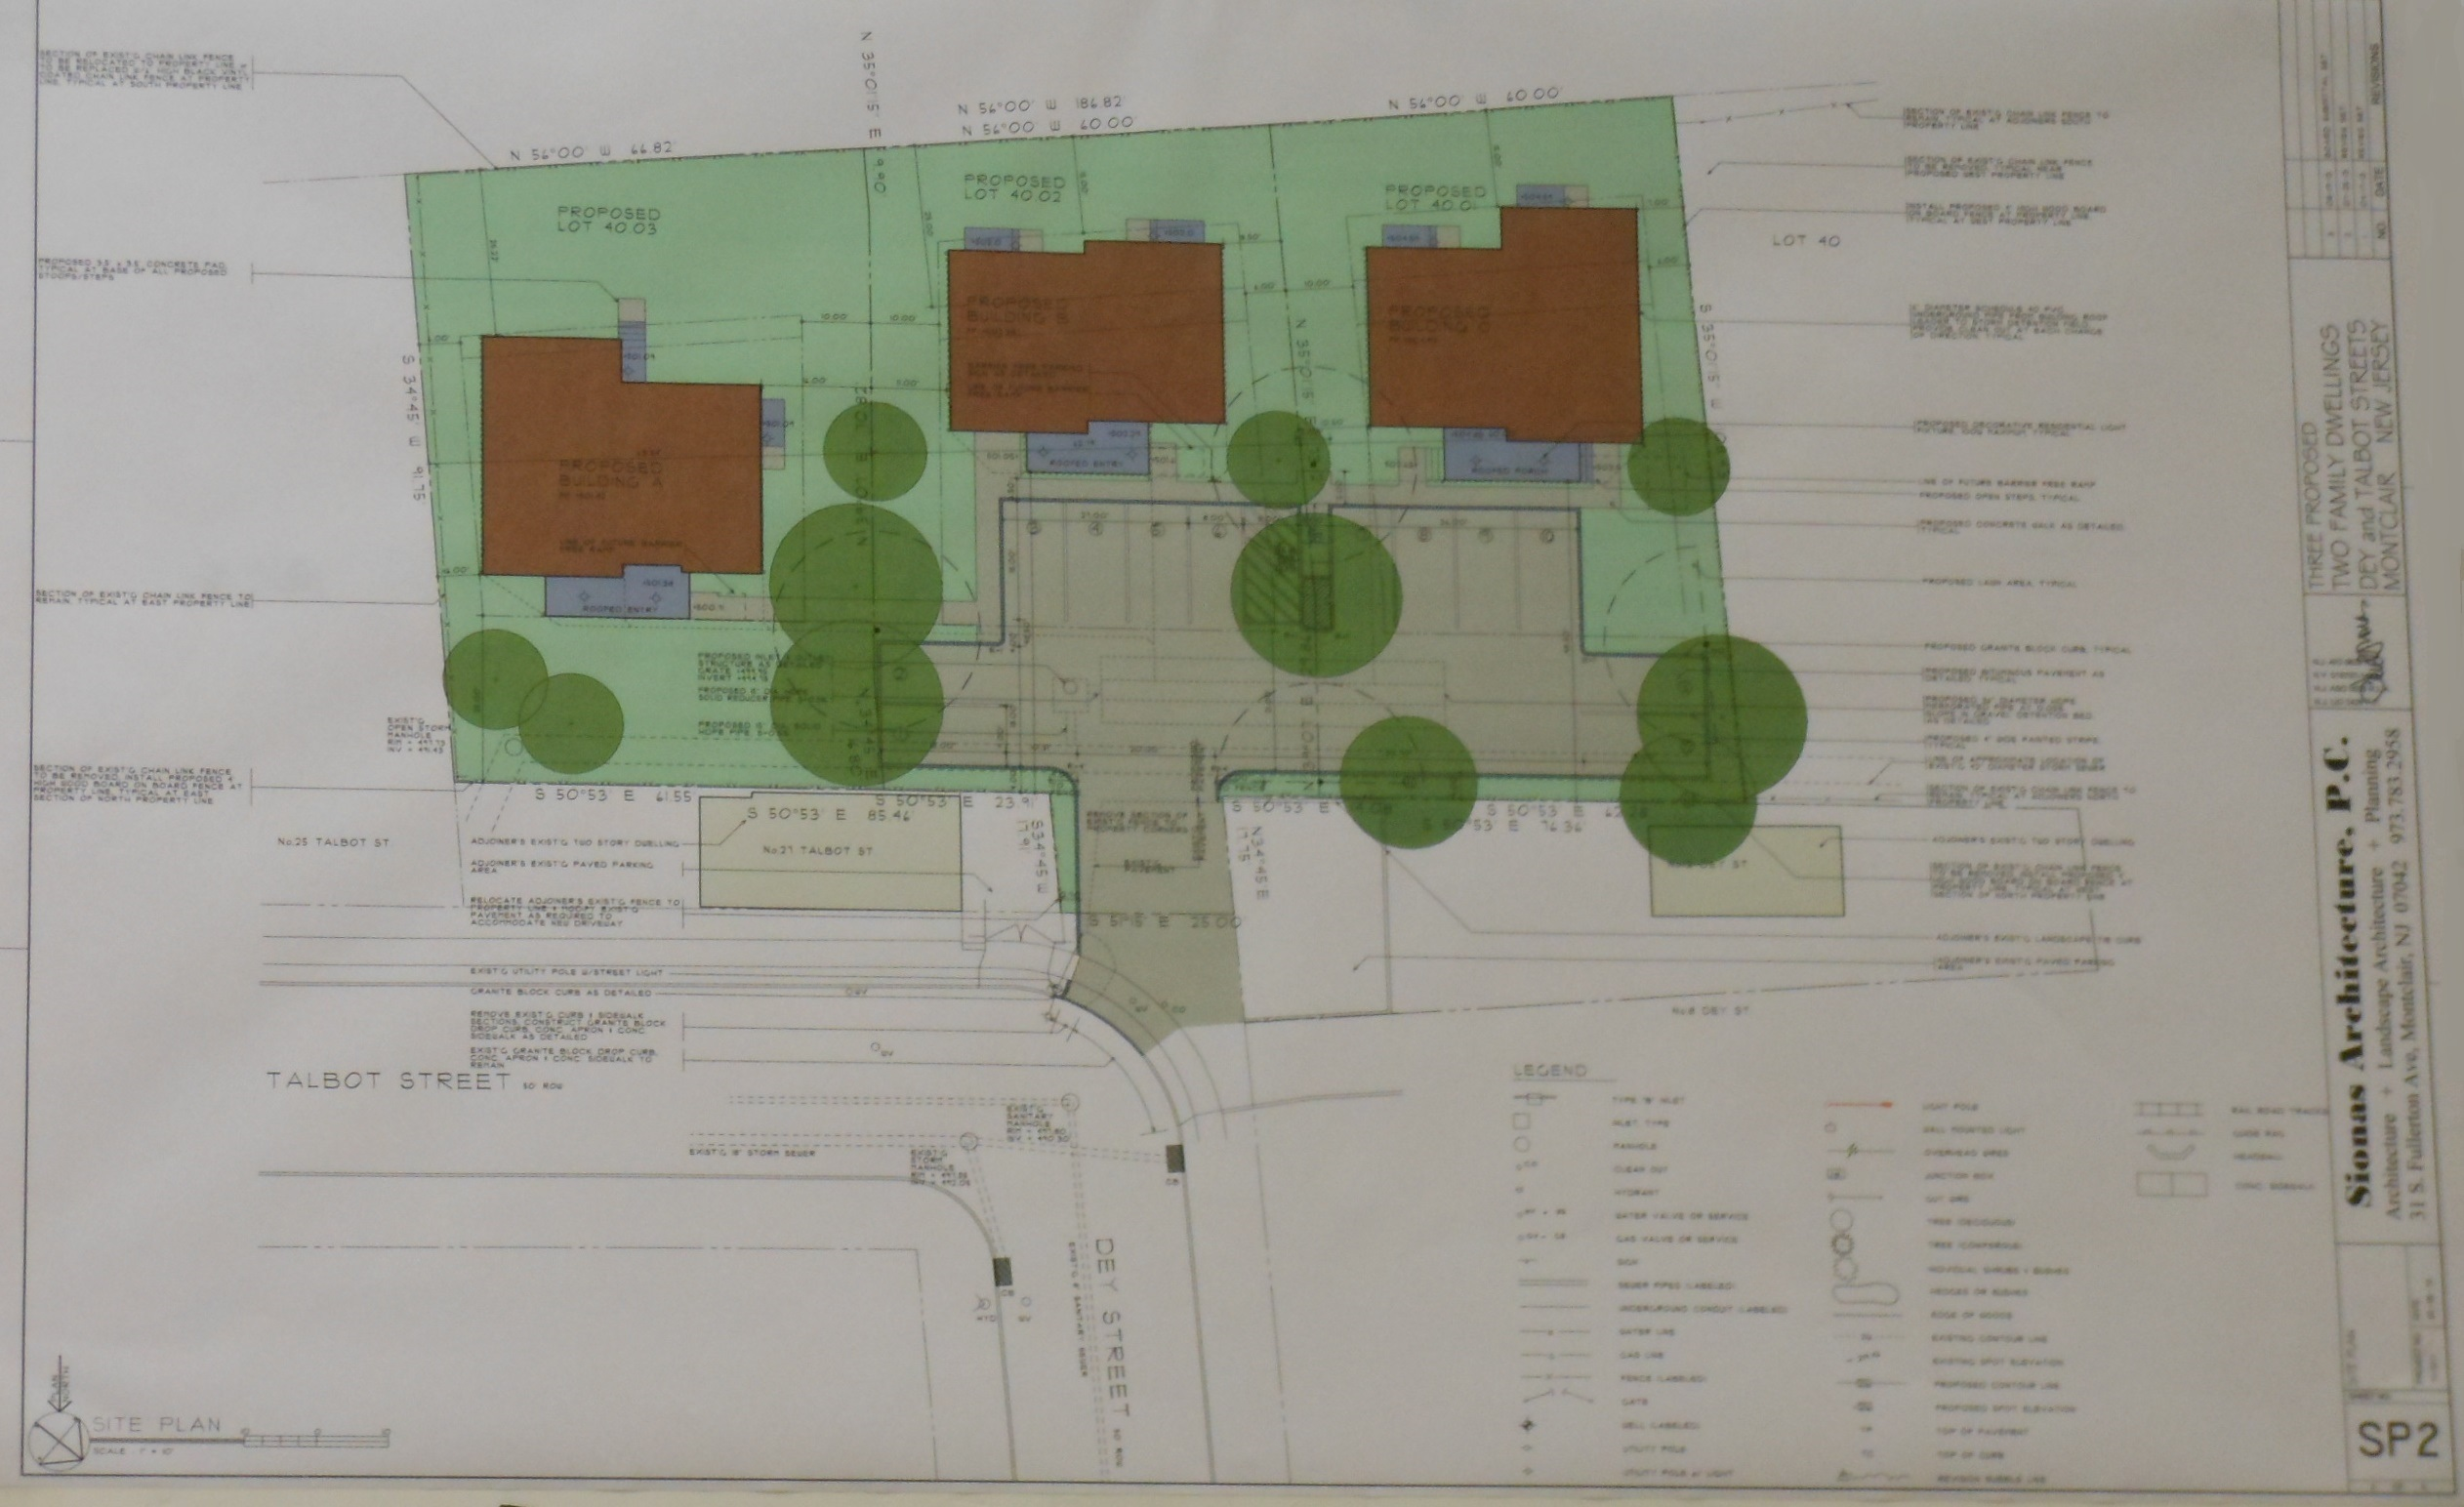 Frog Hollow Community Center Plan